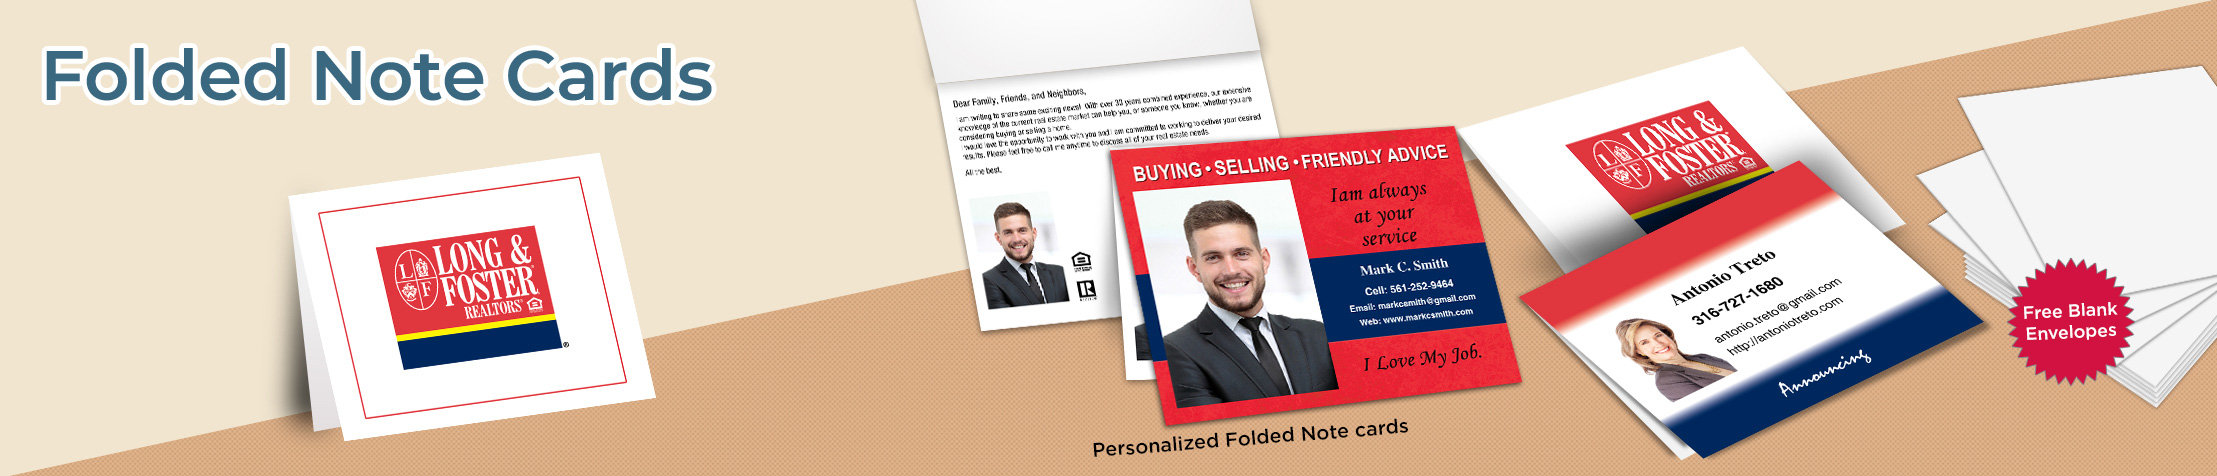 Long and Foster Real Estate Folded Note Cards - Long and Foster stationery | BestPrintBuy.com